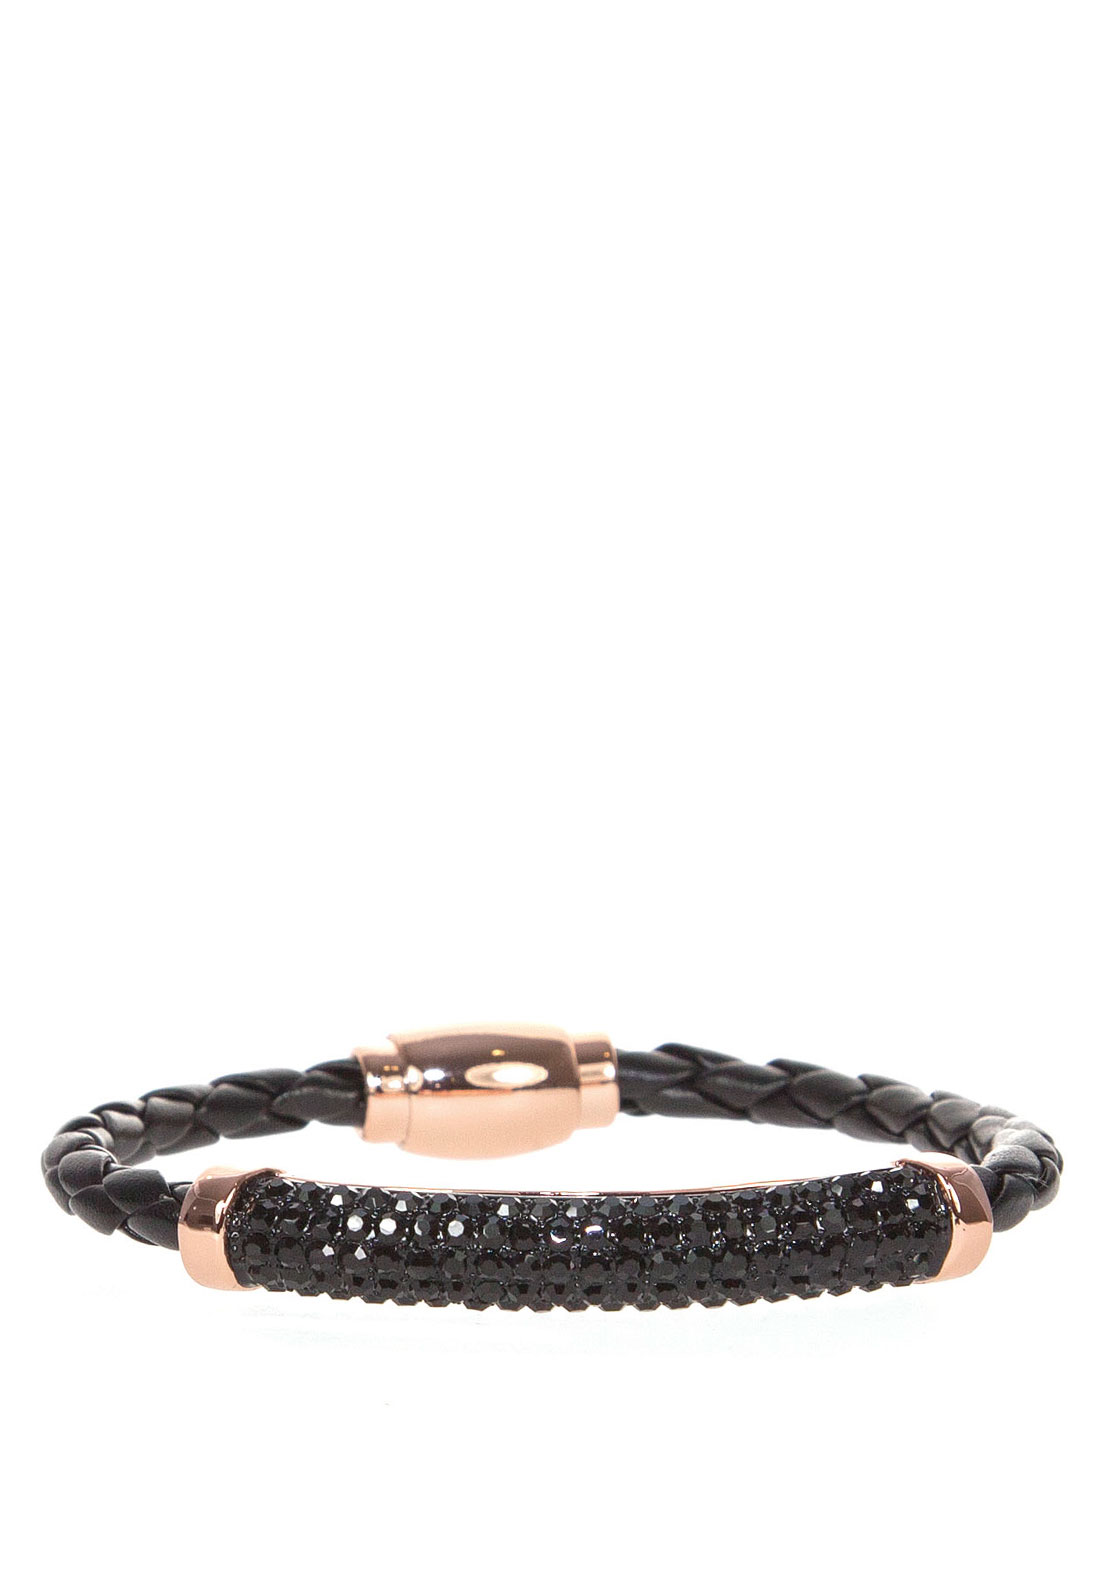 Absolute Black Crystal Embellished Plaited Bracelet, Rose Gold